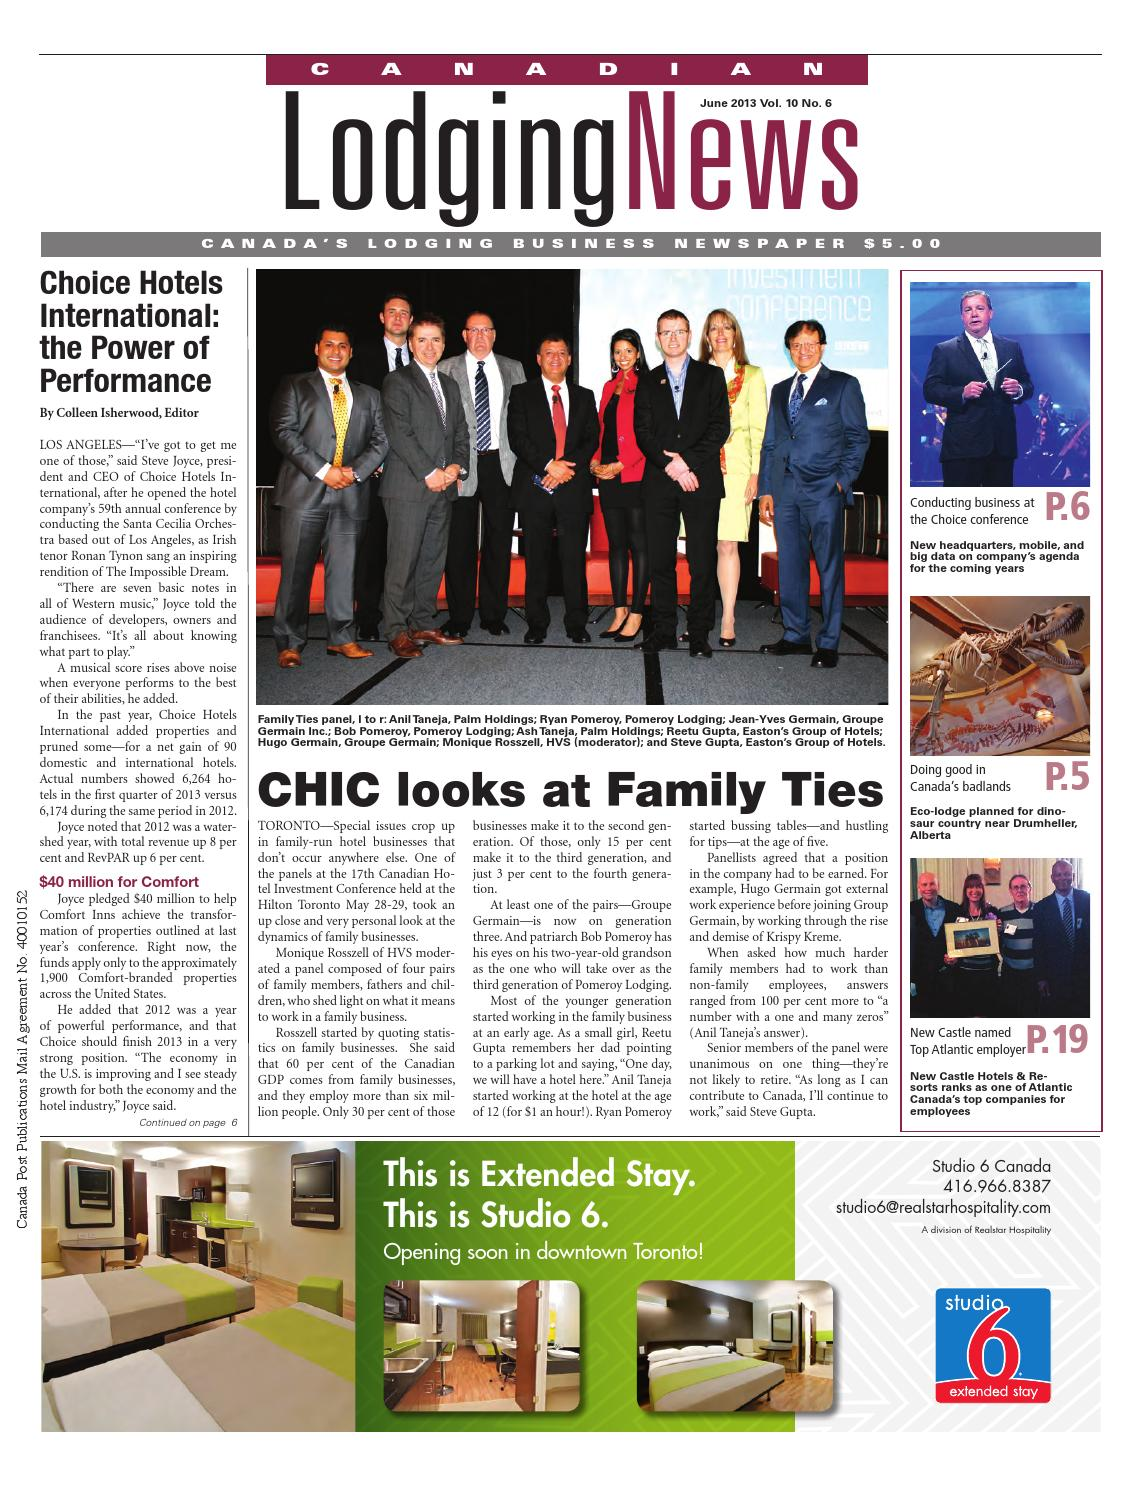 Canadian Lodging News - June 2013 by Ishcom Publications - issuu